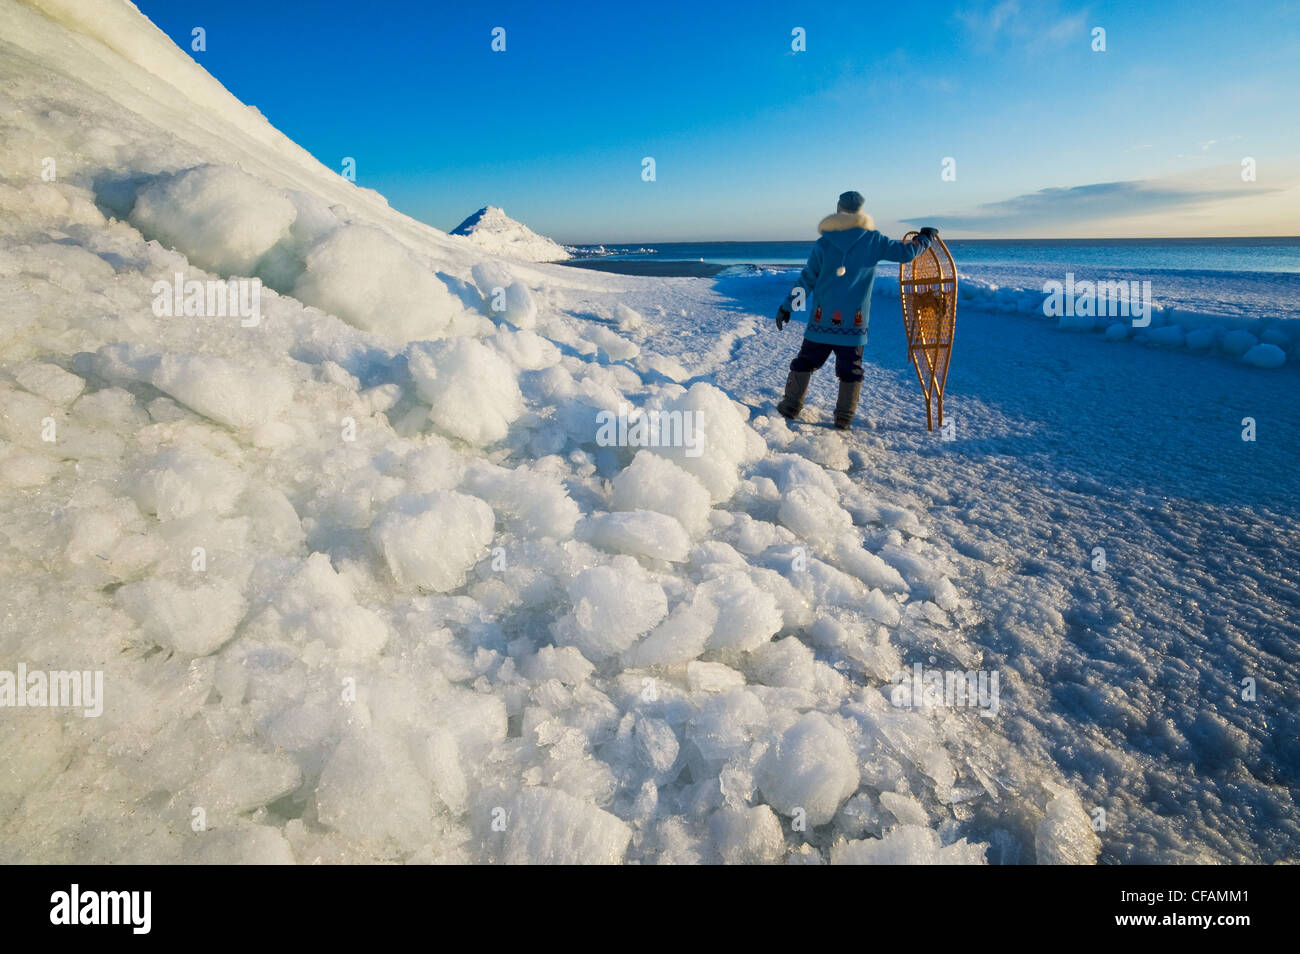 a man with snowshoes looks out over washed up ice piles, along Lake Winnipeg, Manitoba, Canada - Stock Image